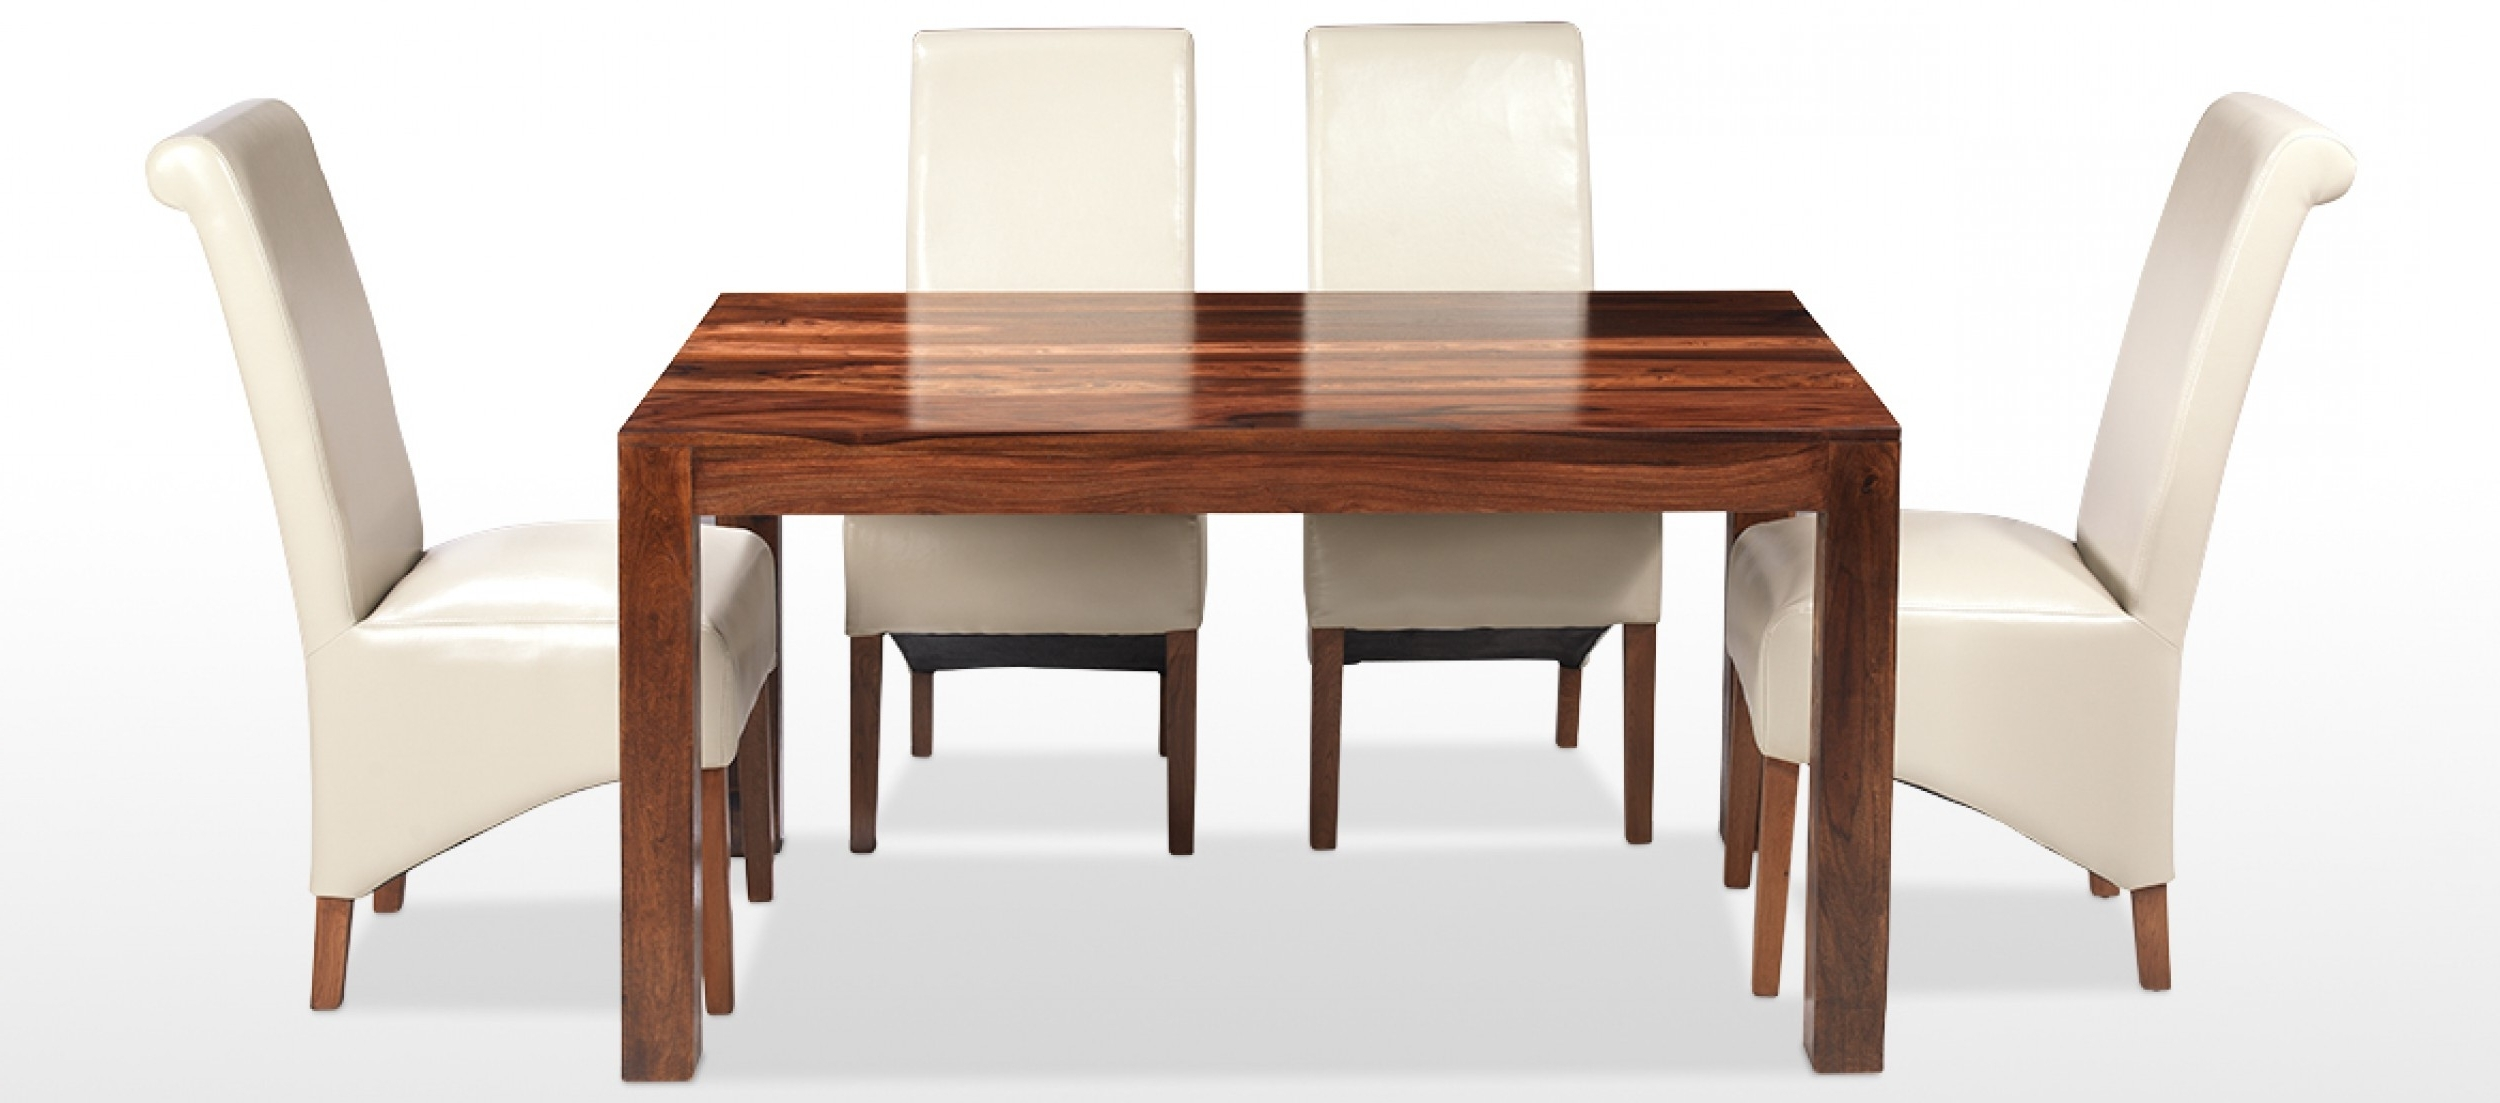 Most Popular Sheesham Dining Tables And 4 Chairs Regarding Cube Sheesham 140 Cm Dining Table And 4 Chairs (View 13 of 25)